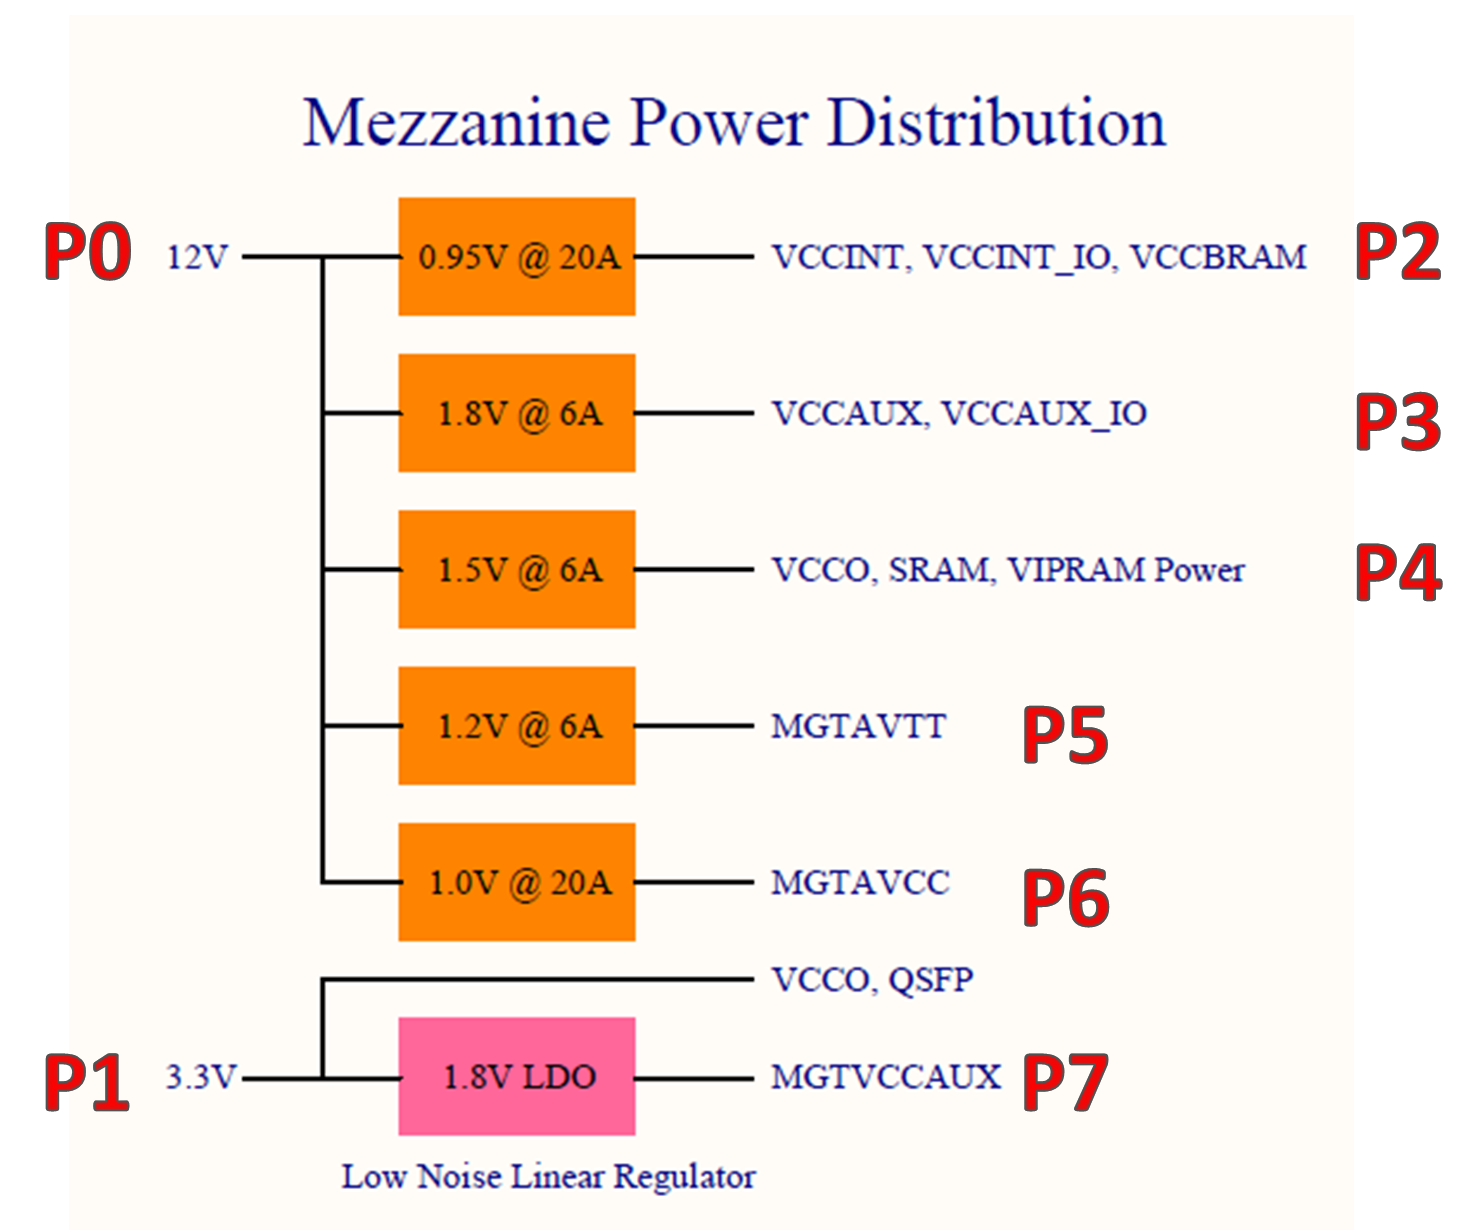 Mezz2_power_dist.PNG